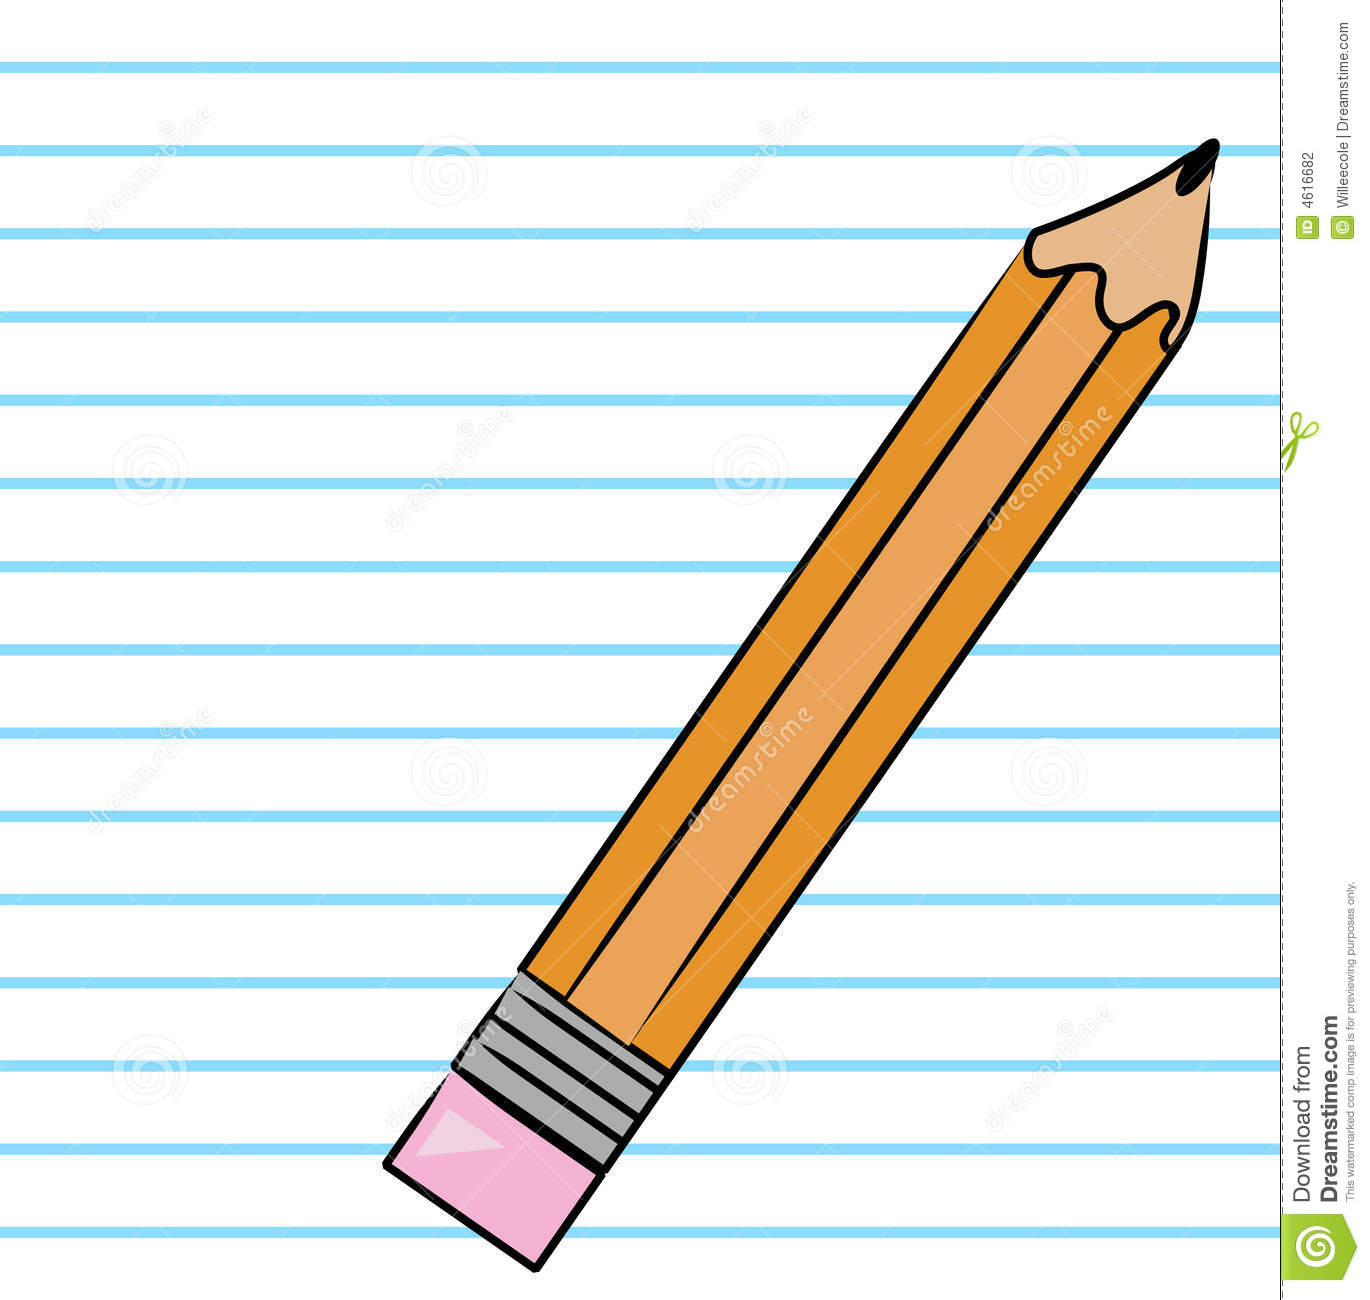 Pencil No Background Clipart - Clipart Suggest